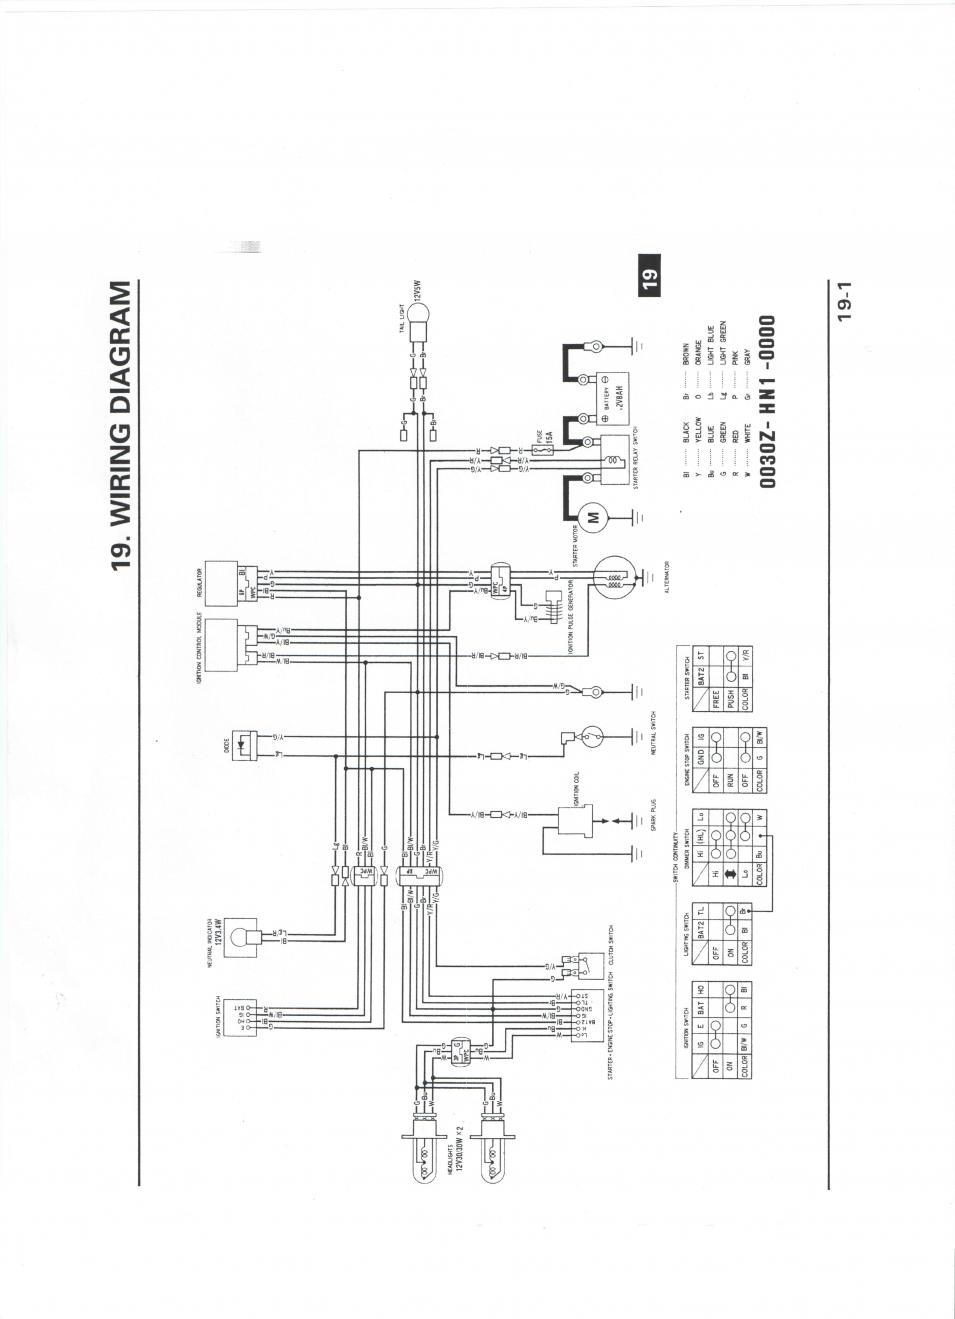 DIAGRAM] 2000 Honda Foreman Headlight Wiring Diagram FULL Version HD  Quality Wiring Diagram - DIAGRAMTHEPLAN.VIRTUAL-EDGE.ITDiagram Database - virtual-edge.it